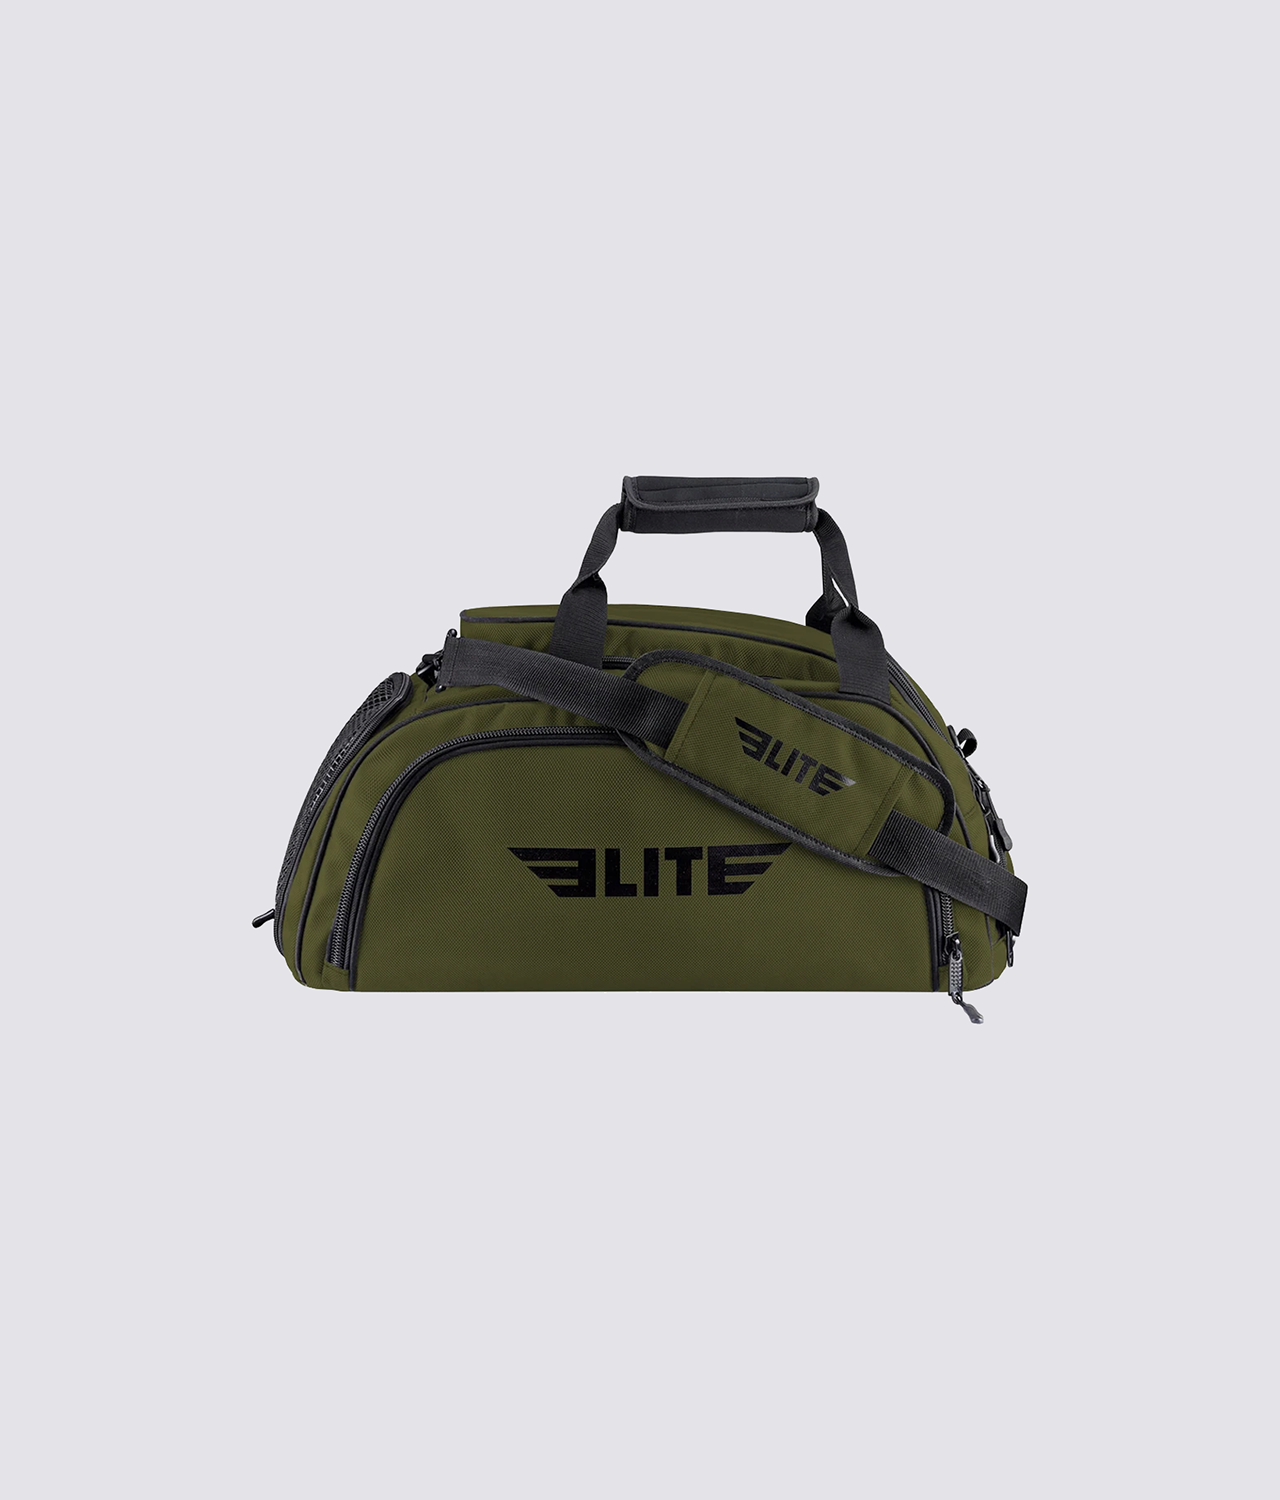 Elite Sports Warrior Series Military Green Large Duffel MMA Gear Gym Bag & Backpack